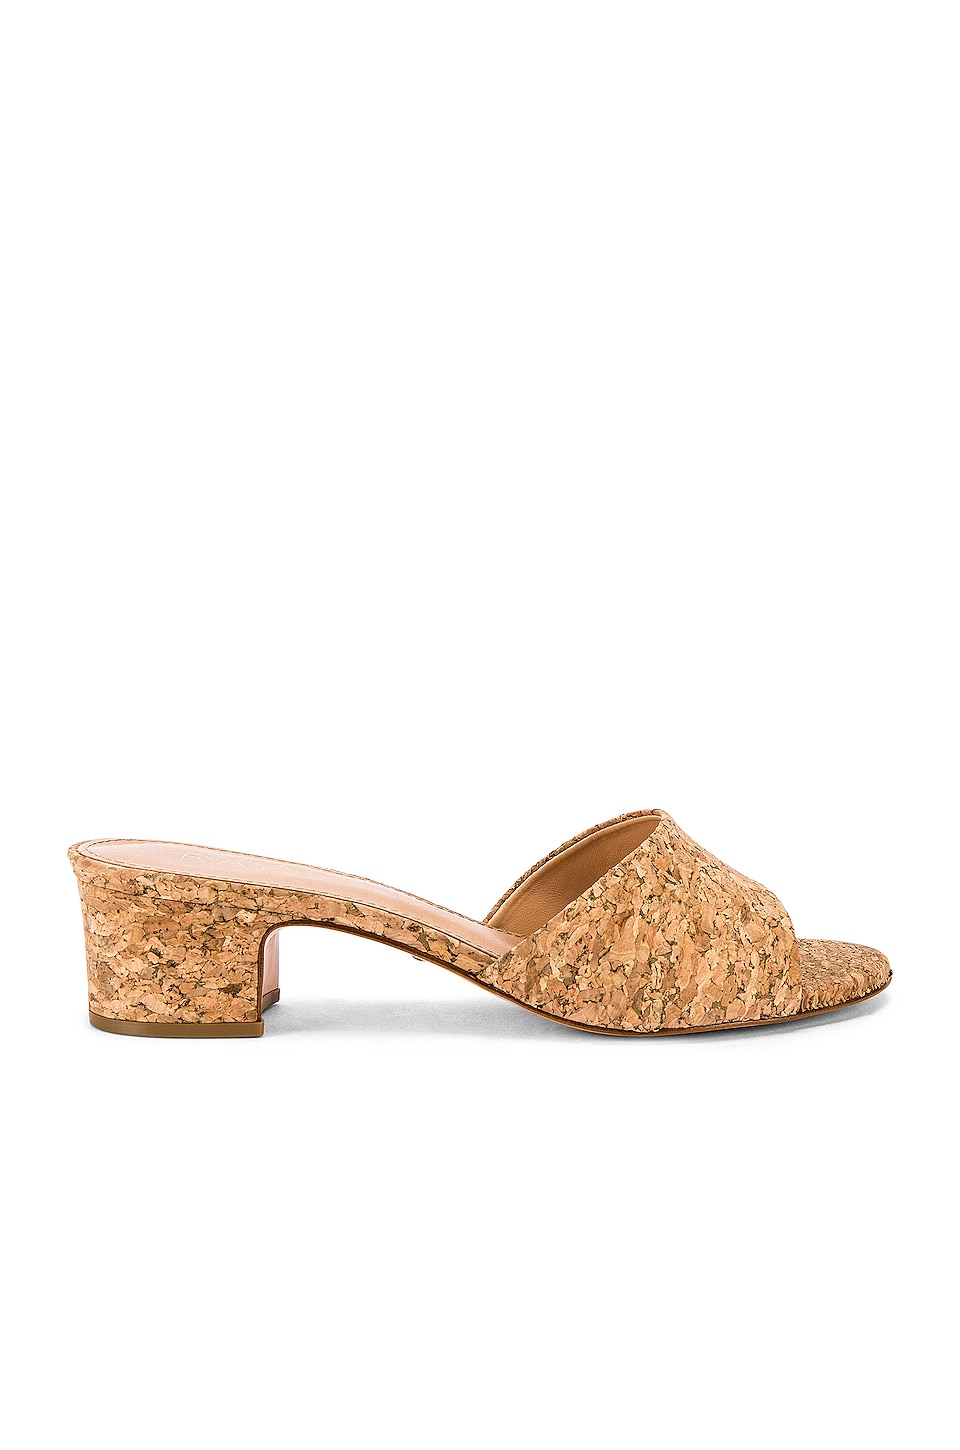 RAYE Calypso Heel in Natural